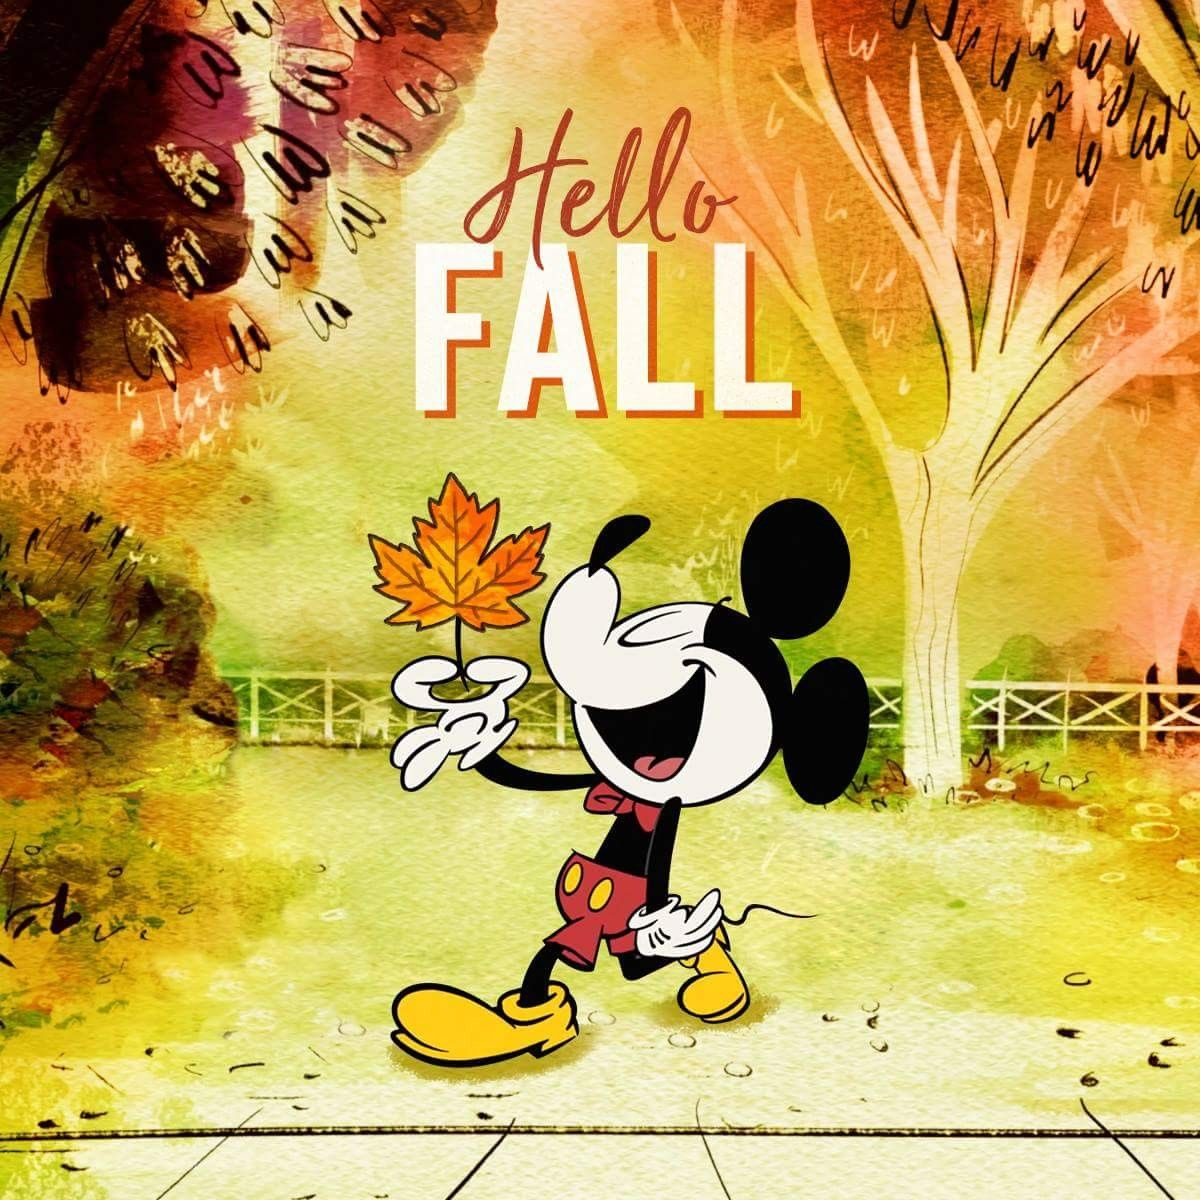 It's the first day of fall! Can you beleaf it? 🍁 Mickey